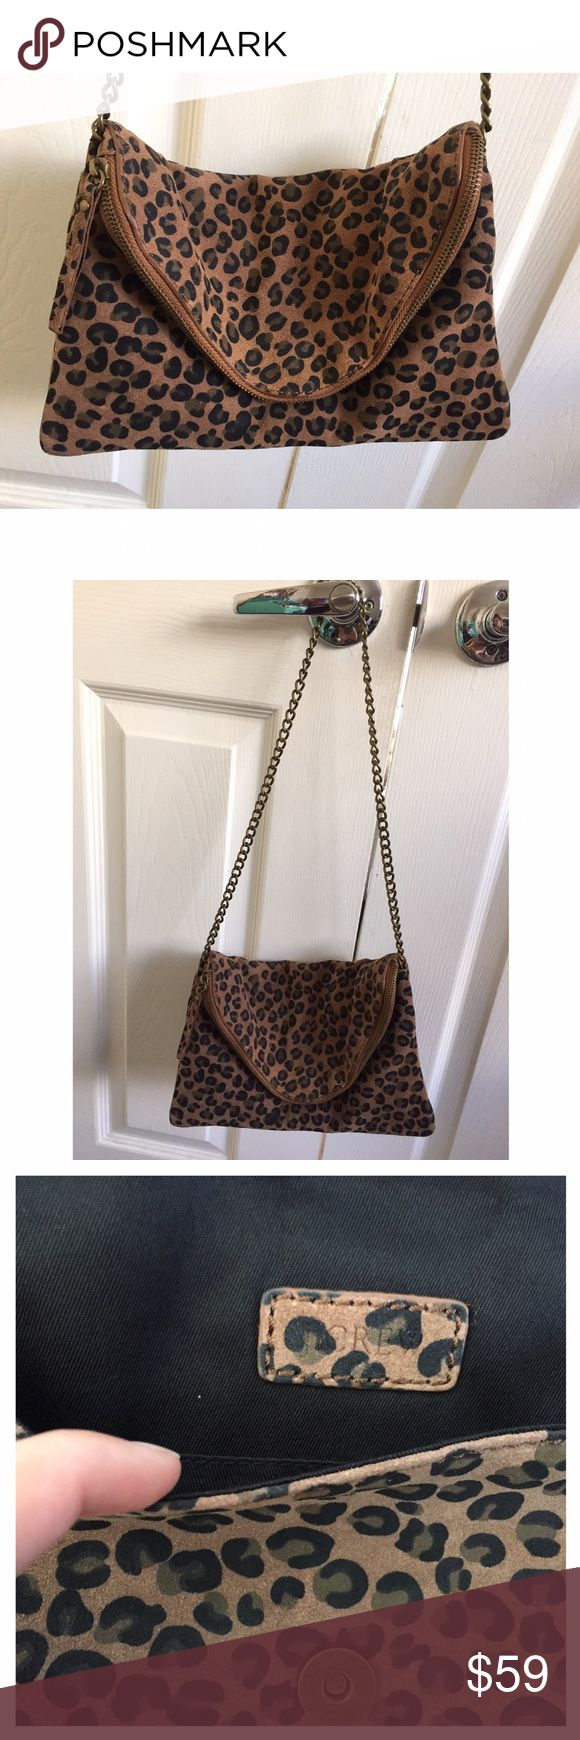 J. Crew Animal Print Bag Animal print wristlet/clutch. Magnetic button closure at front + zip closure. Large pocket on the backside. Worn just twice. Like new. J. Crew Bags Mini Bags